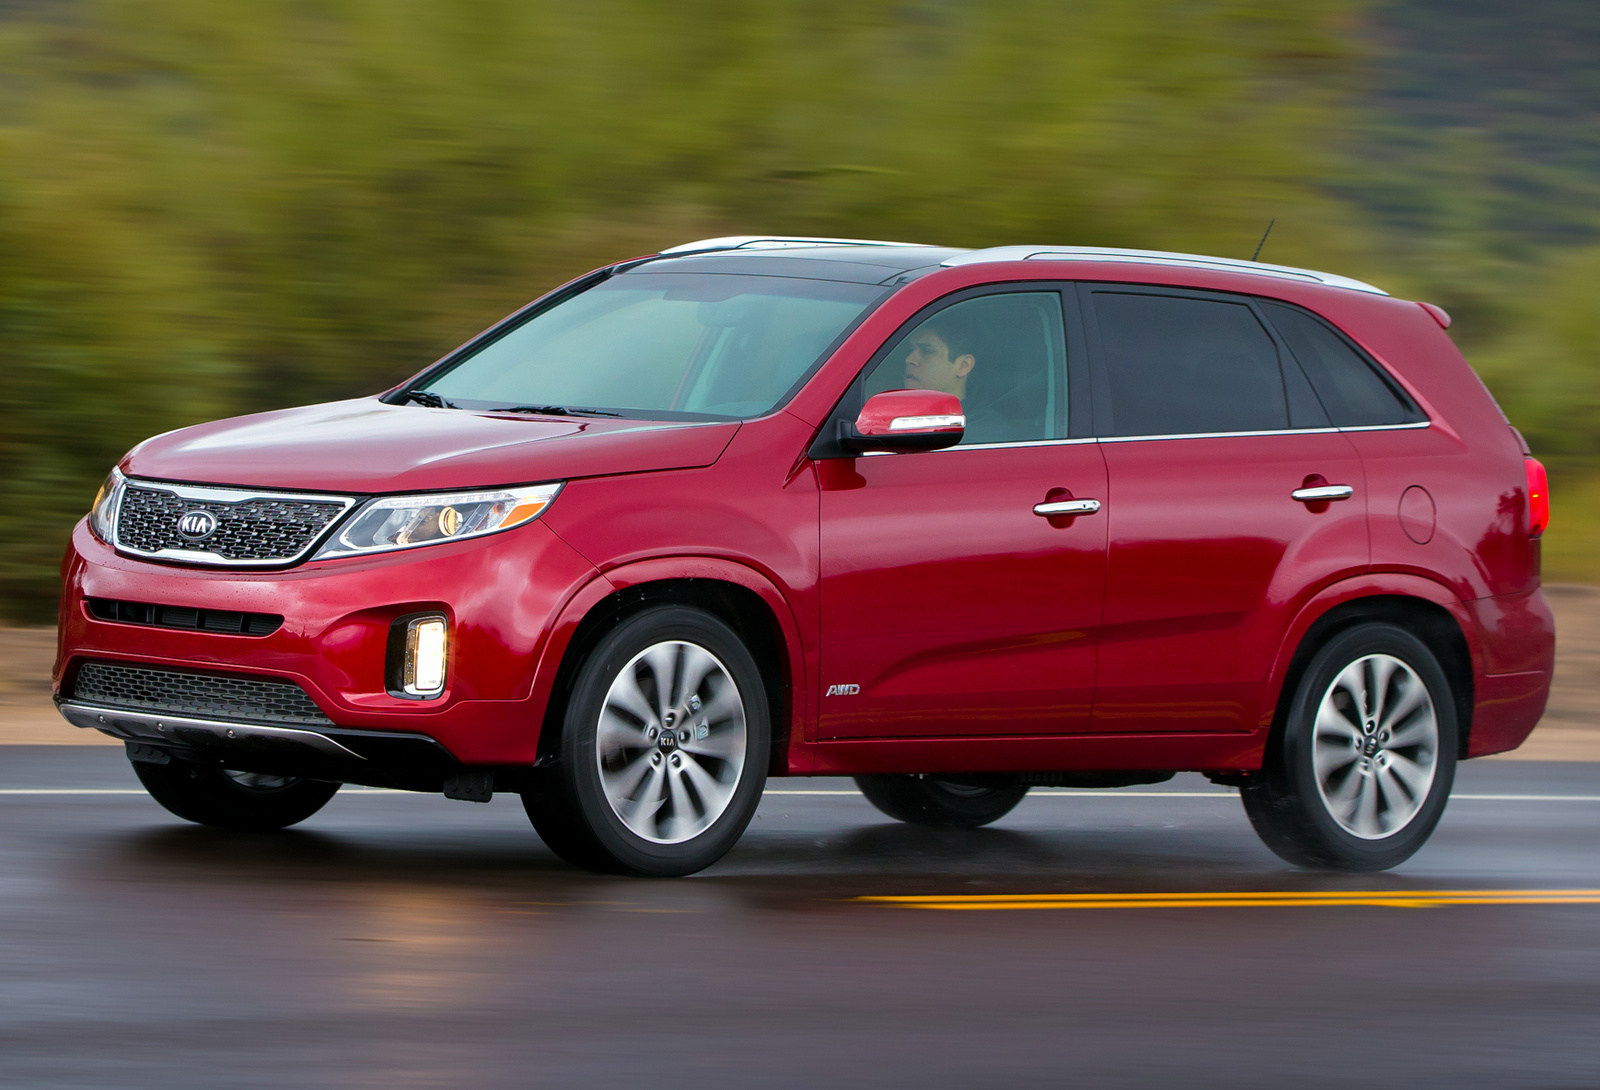 2014 kia sorento test drive review cargurus. Black Bedroom Furniture Sets. Home Design Ideas